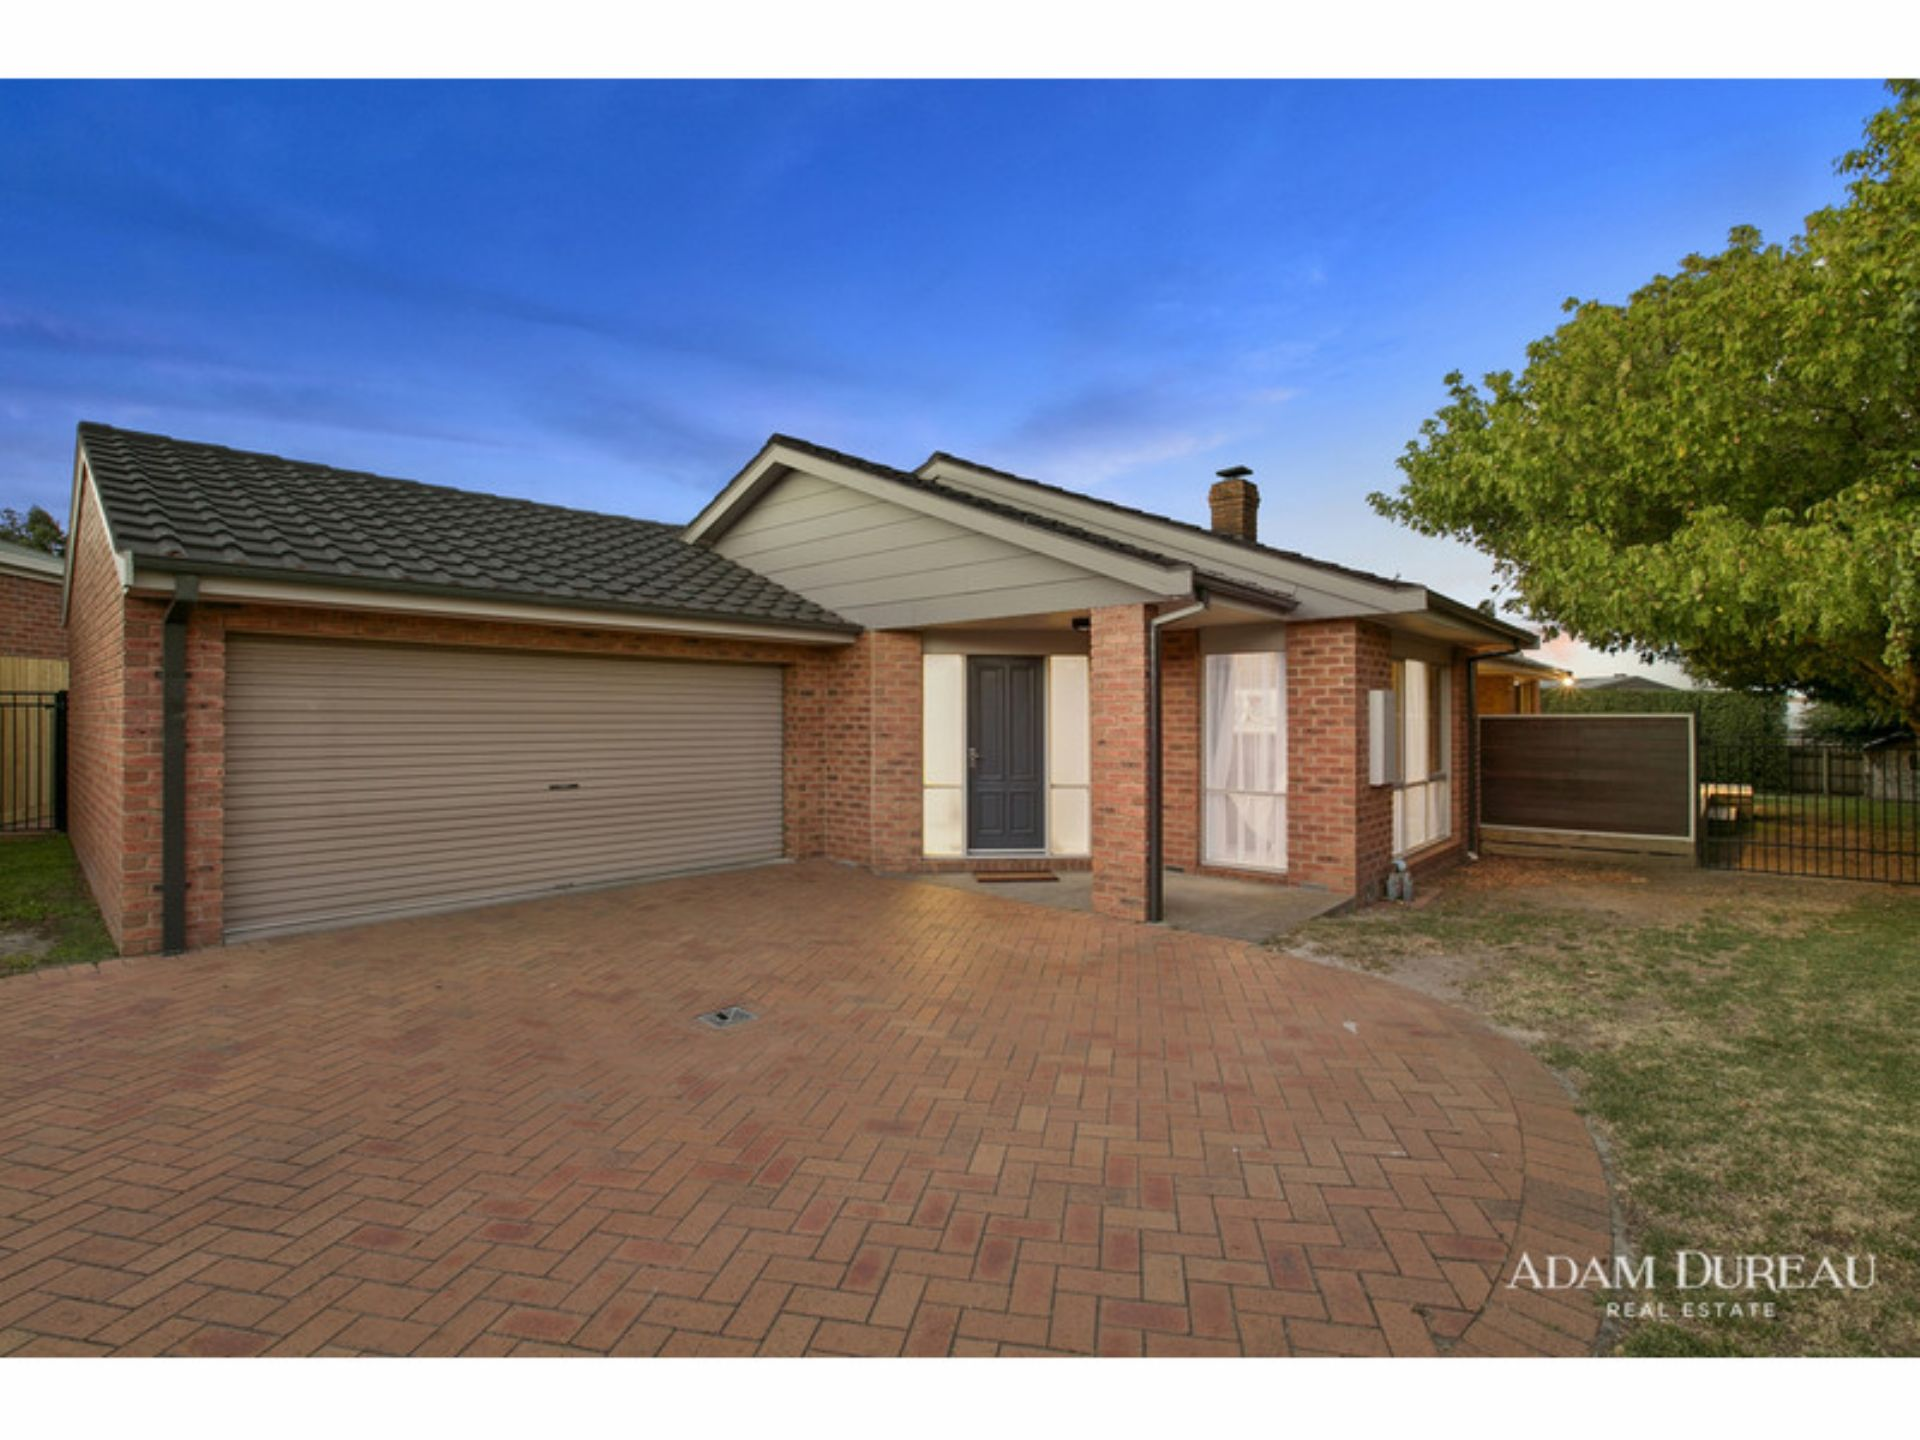 13 Callistemon Court, MORNINGTON, VIC, 3931 - Image